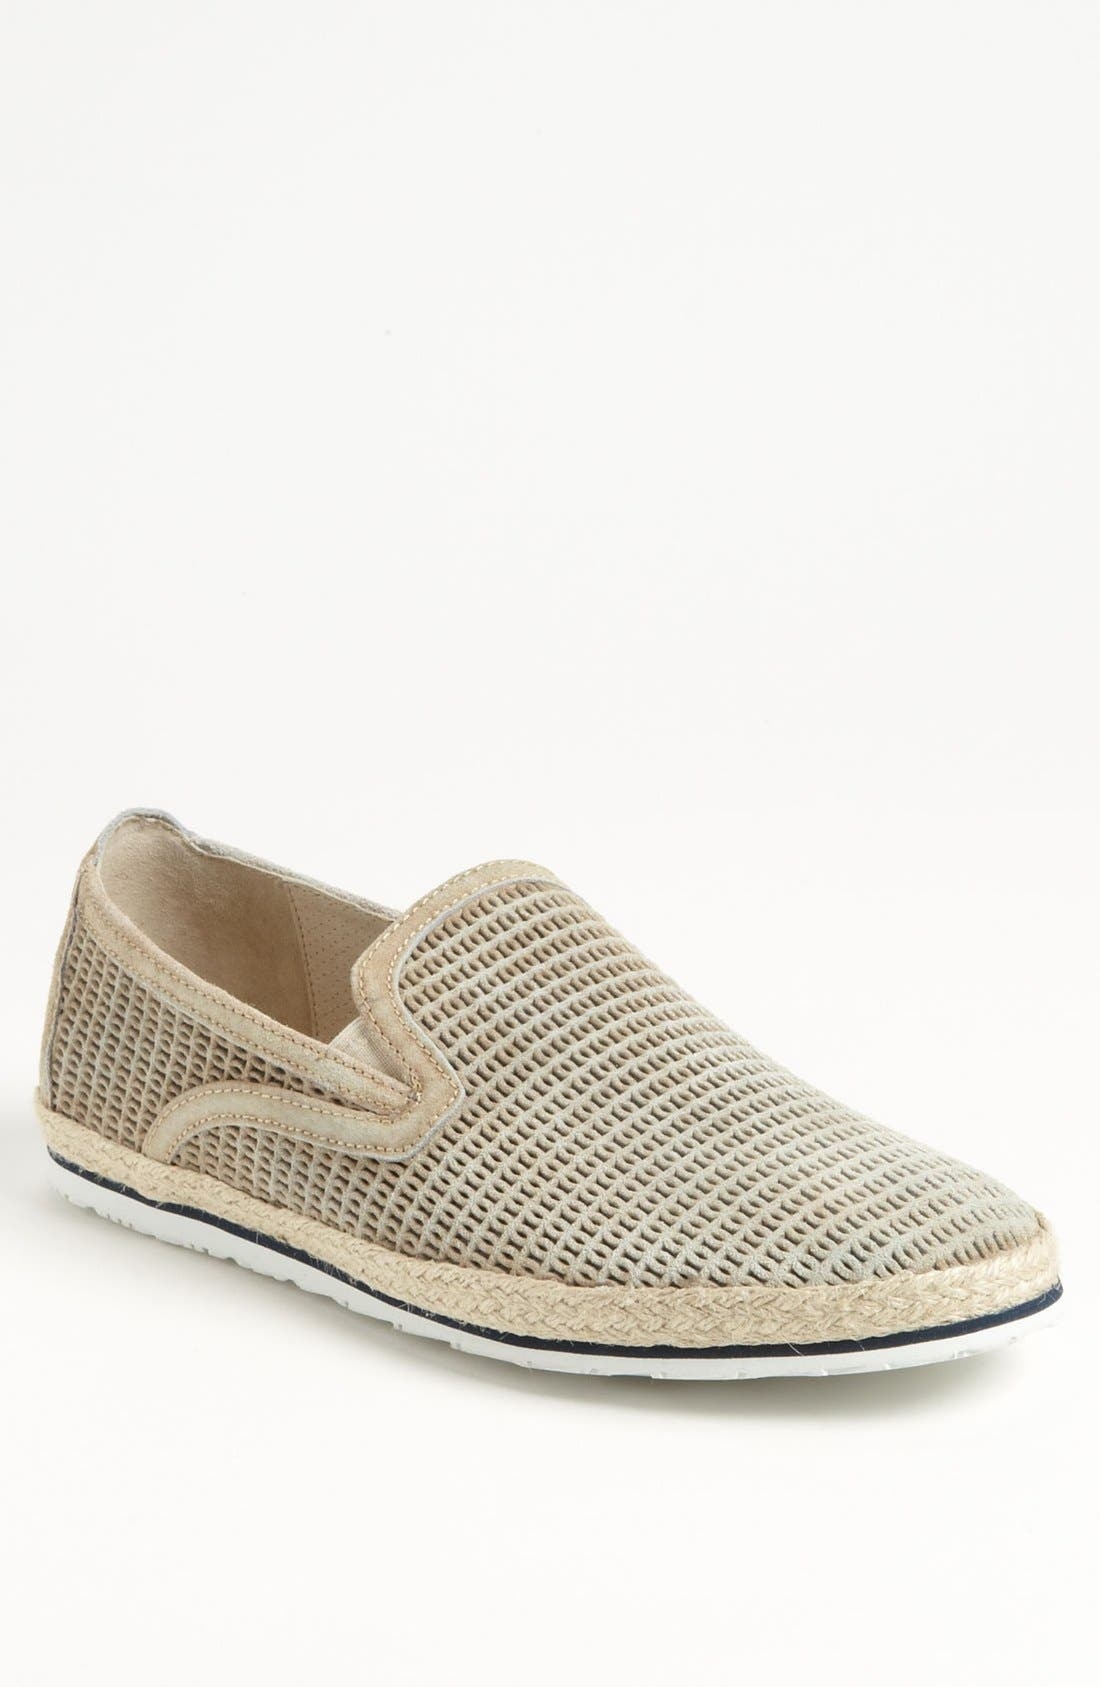 Main Image - Vince Camuto 'Sellero' Slip-On